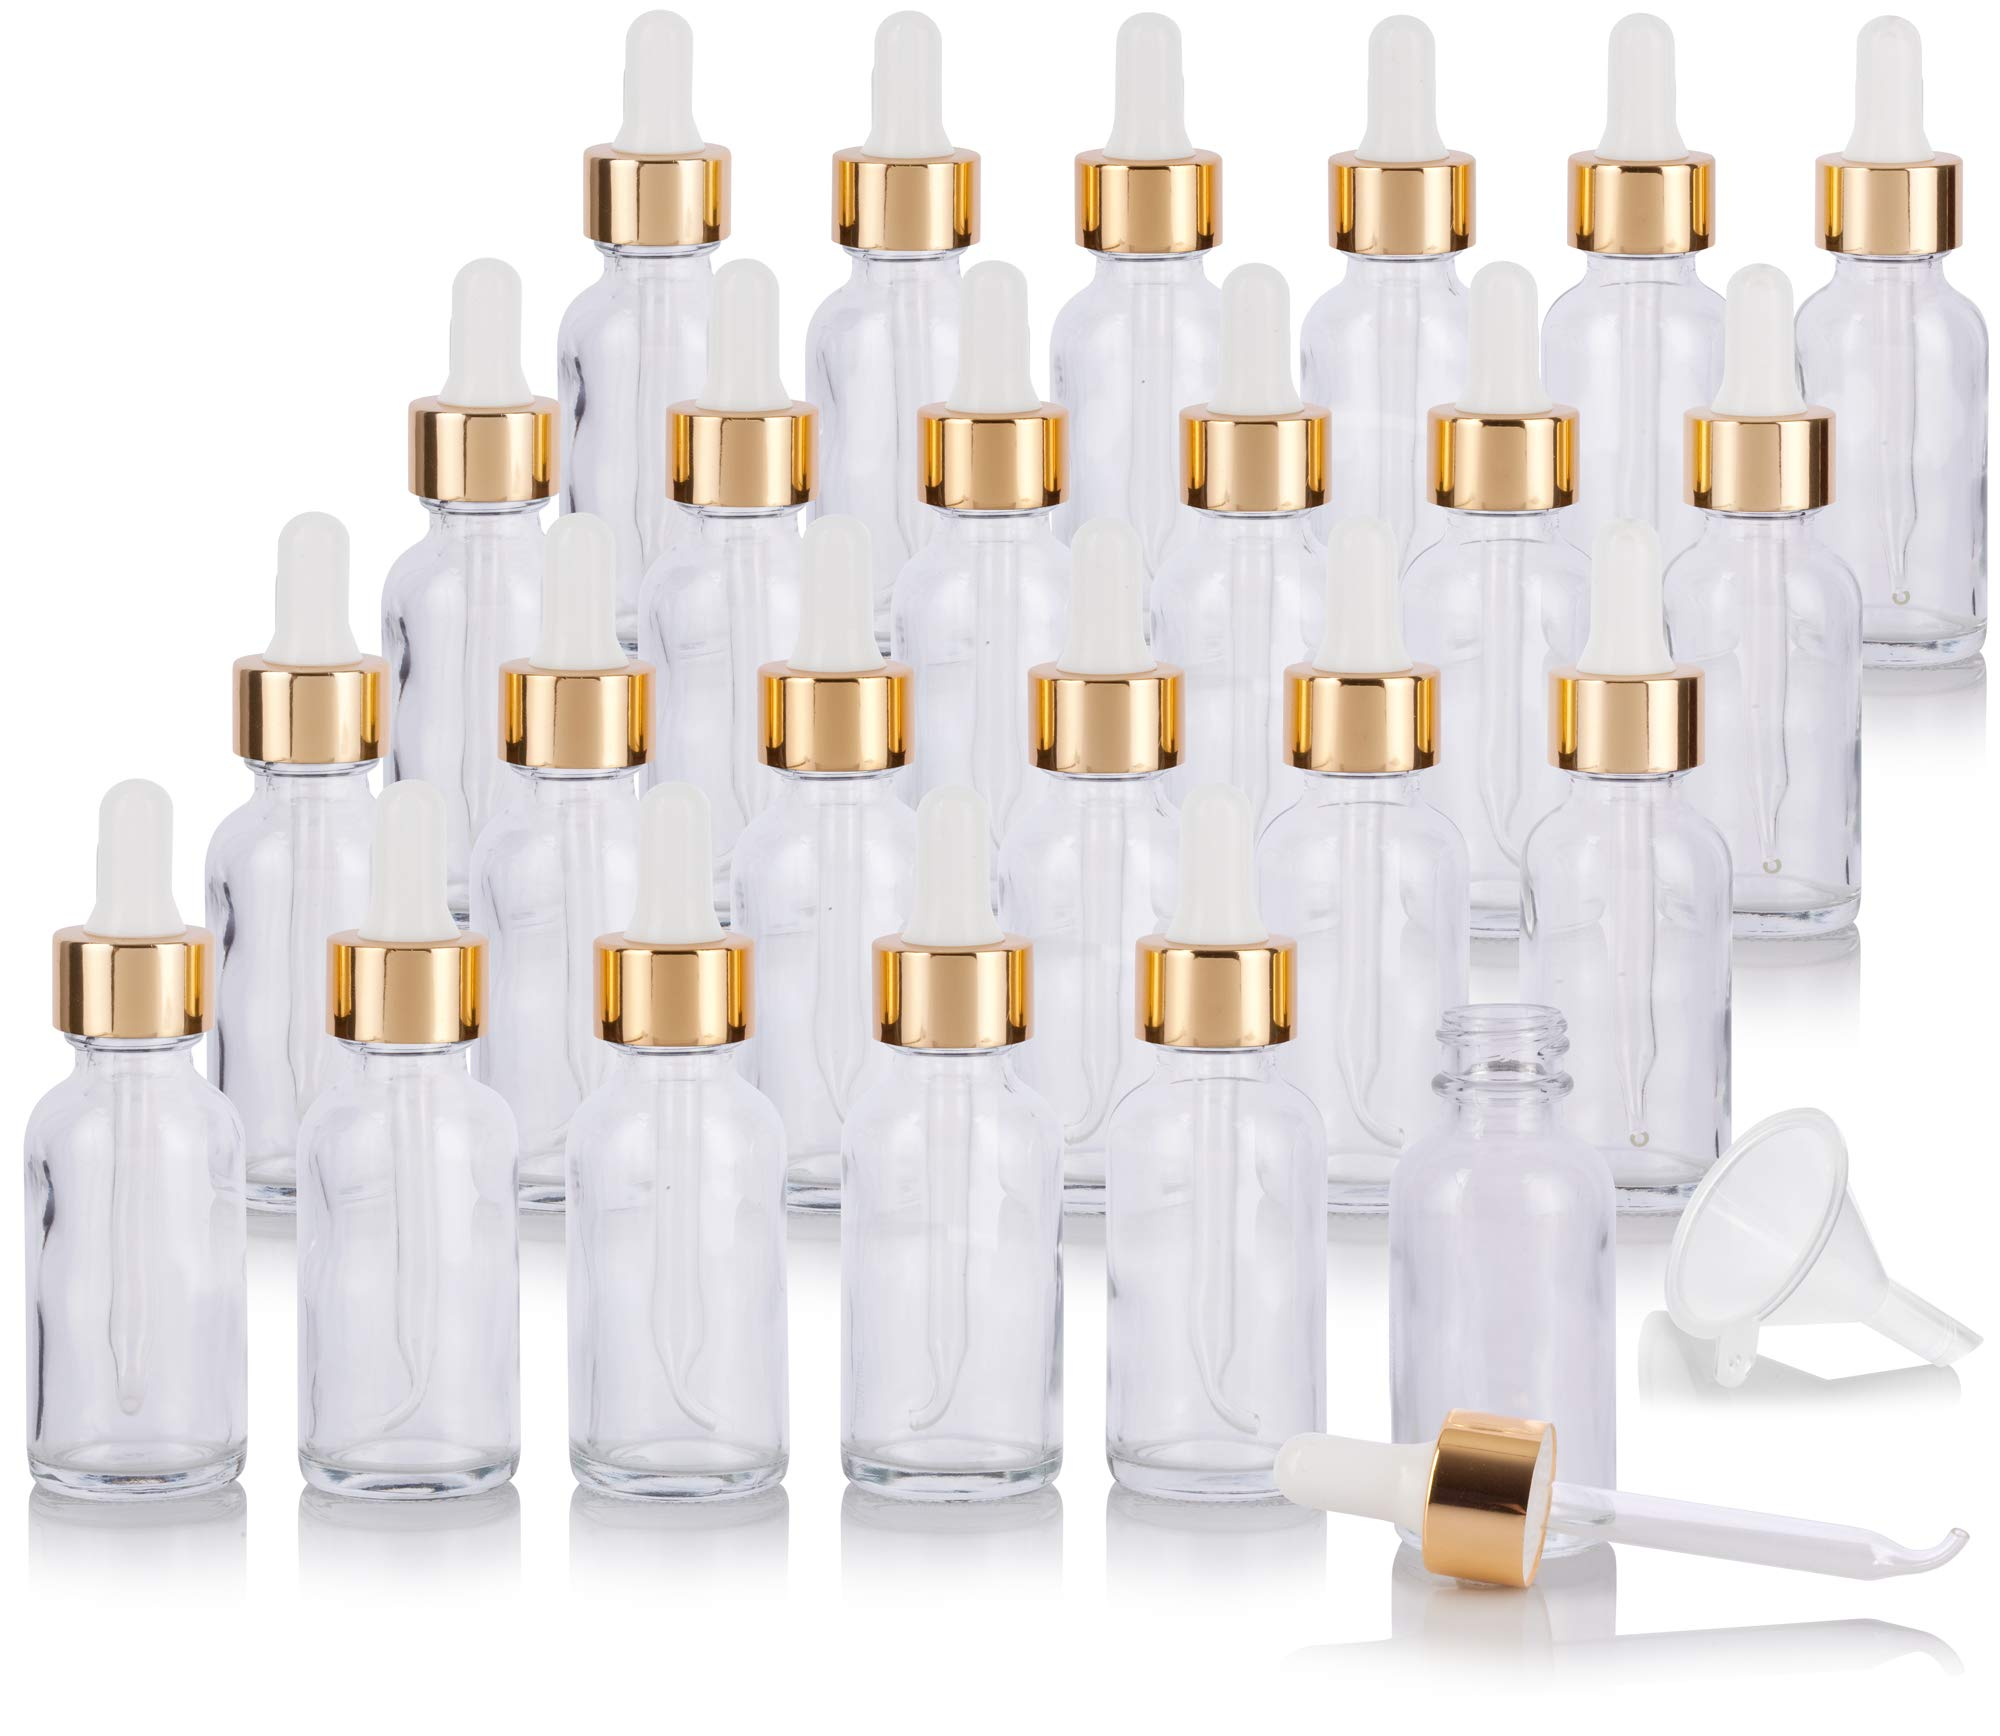 1 oz Clear Glass Boston Round Bottle with Gold Metal and Glass Dropper (24 pack) + Funnel for Essential oils, Aromatherapy, E-liquid, Food grade, BPA free by JUVITUS